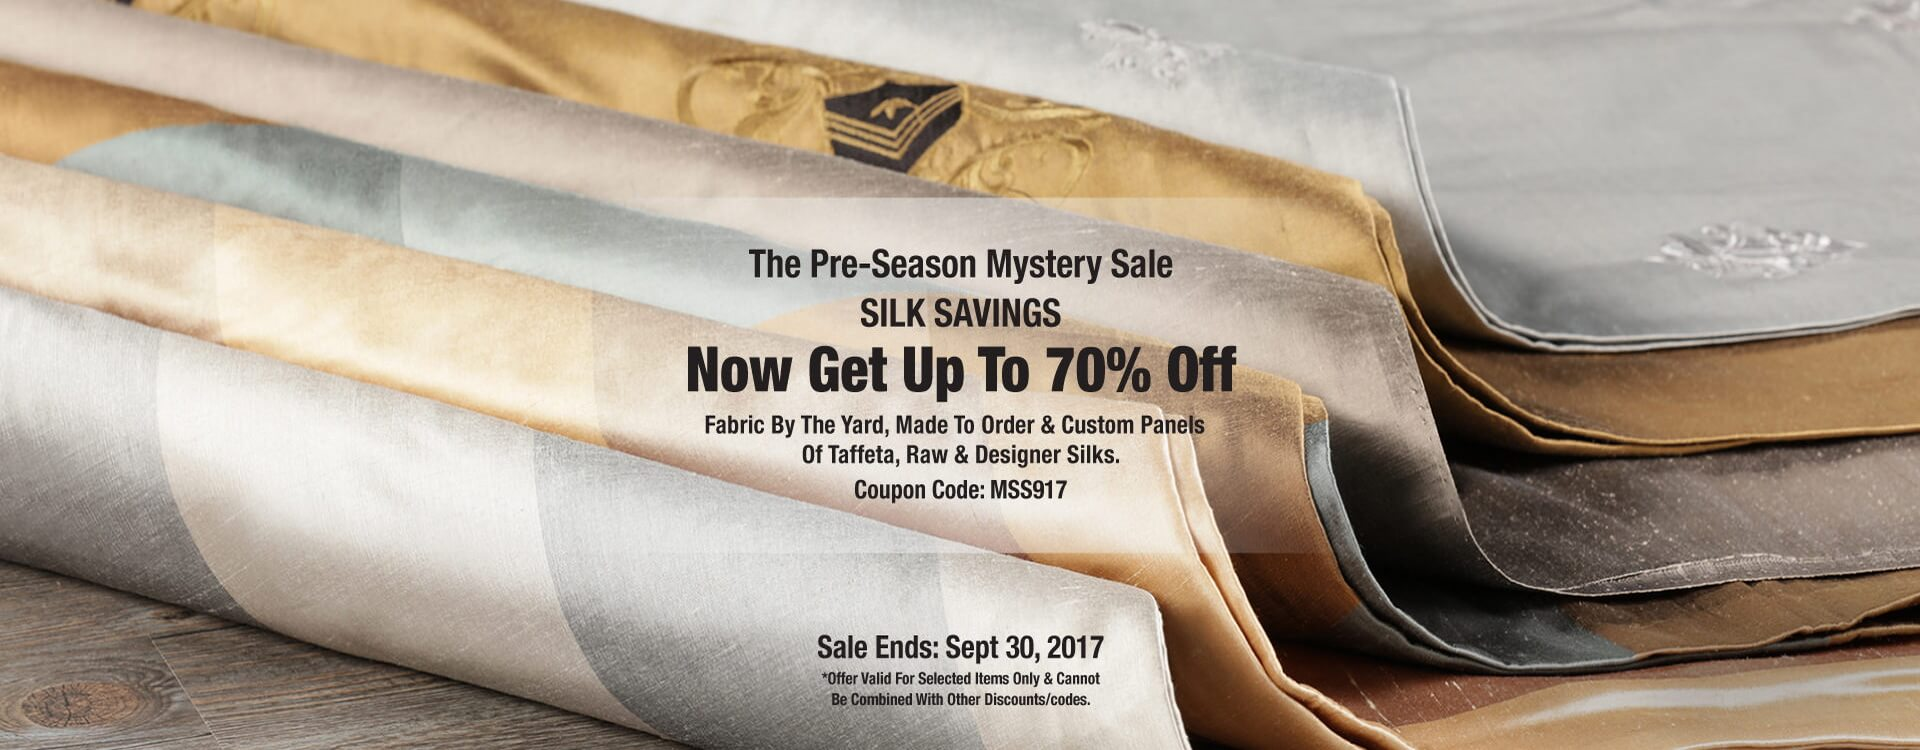 Preseason Silk Sale